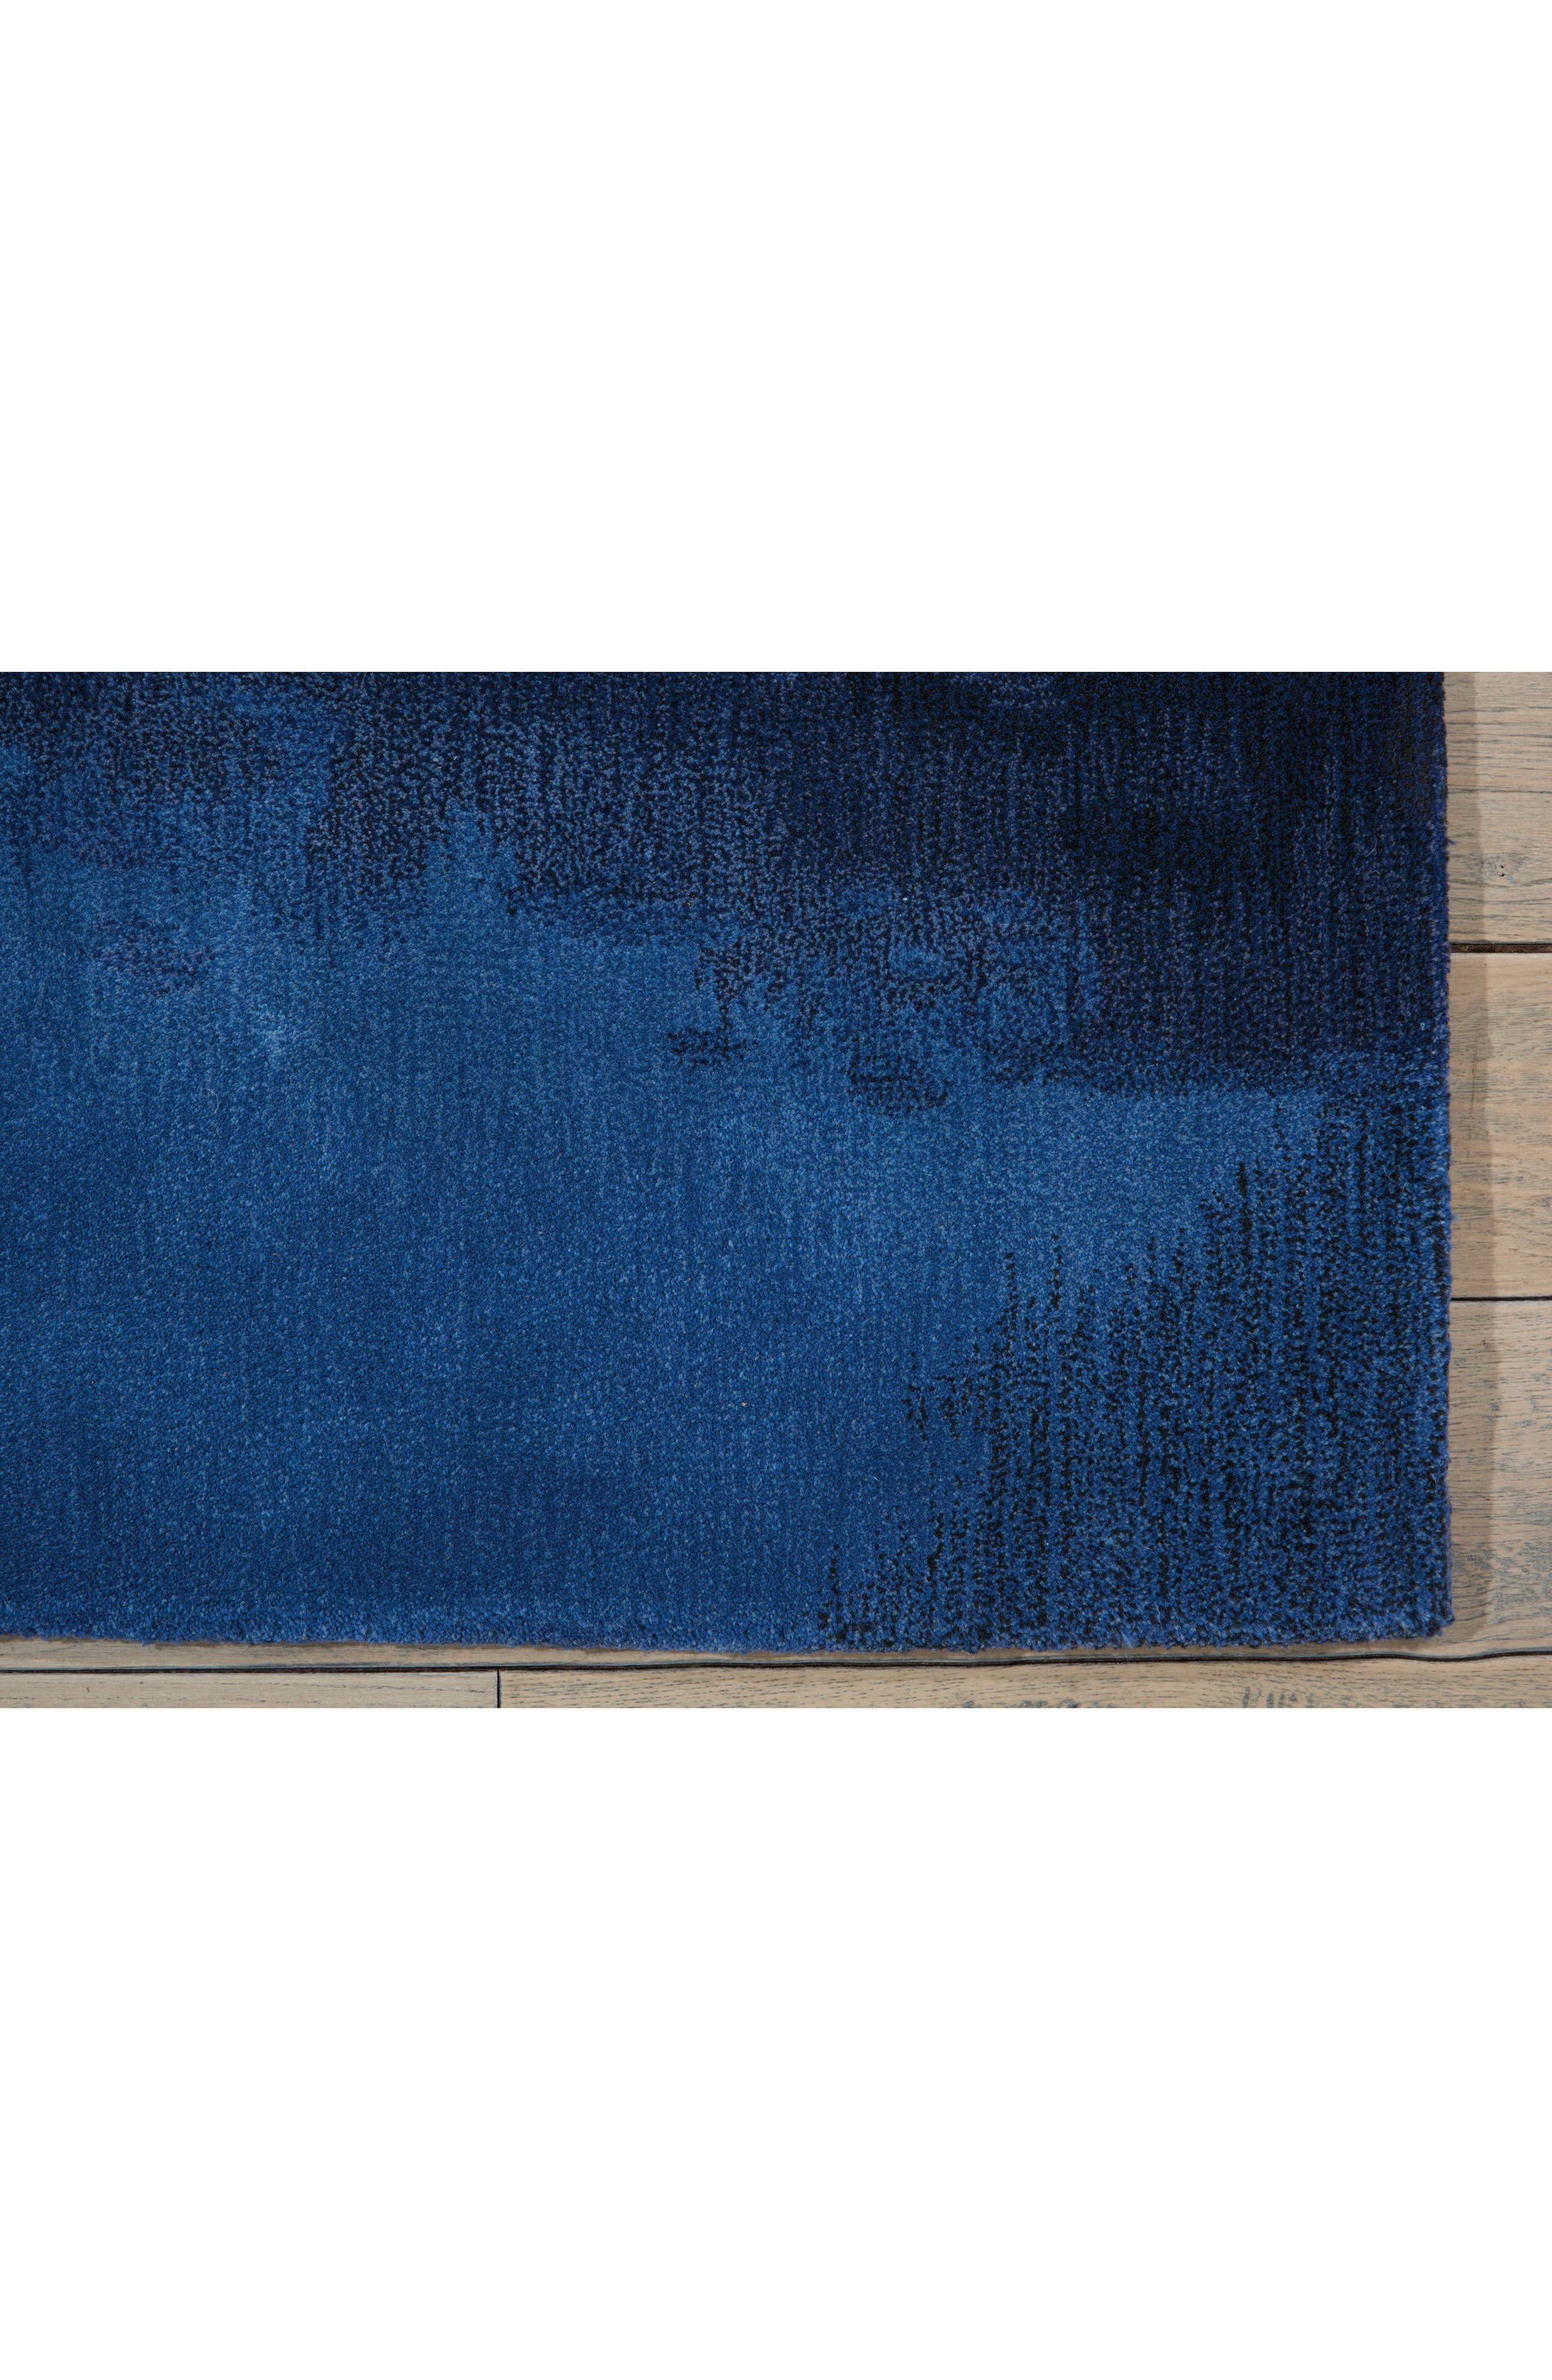 Luster Wash Wool Area Rug,                             Alternate thumbnail 27, color,